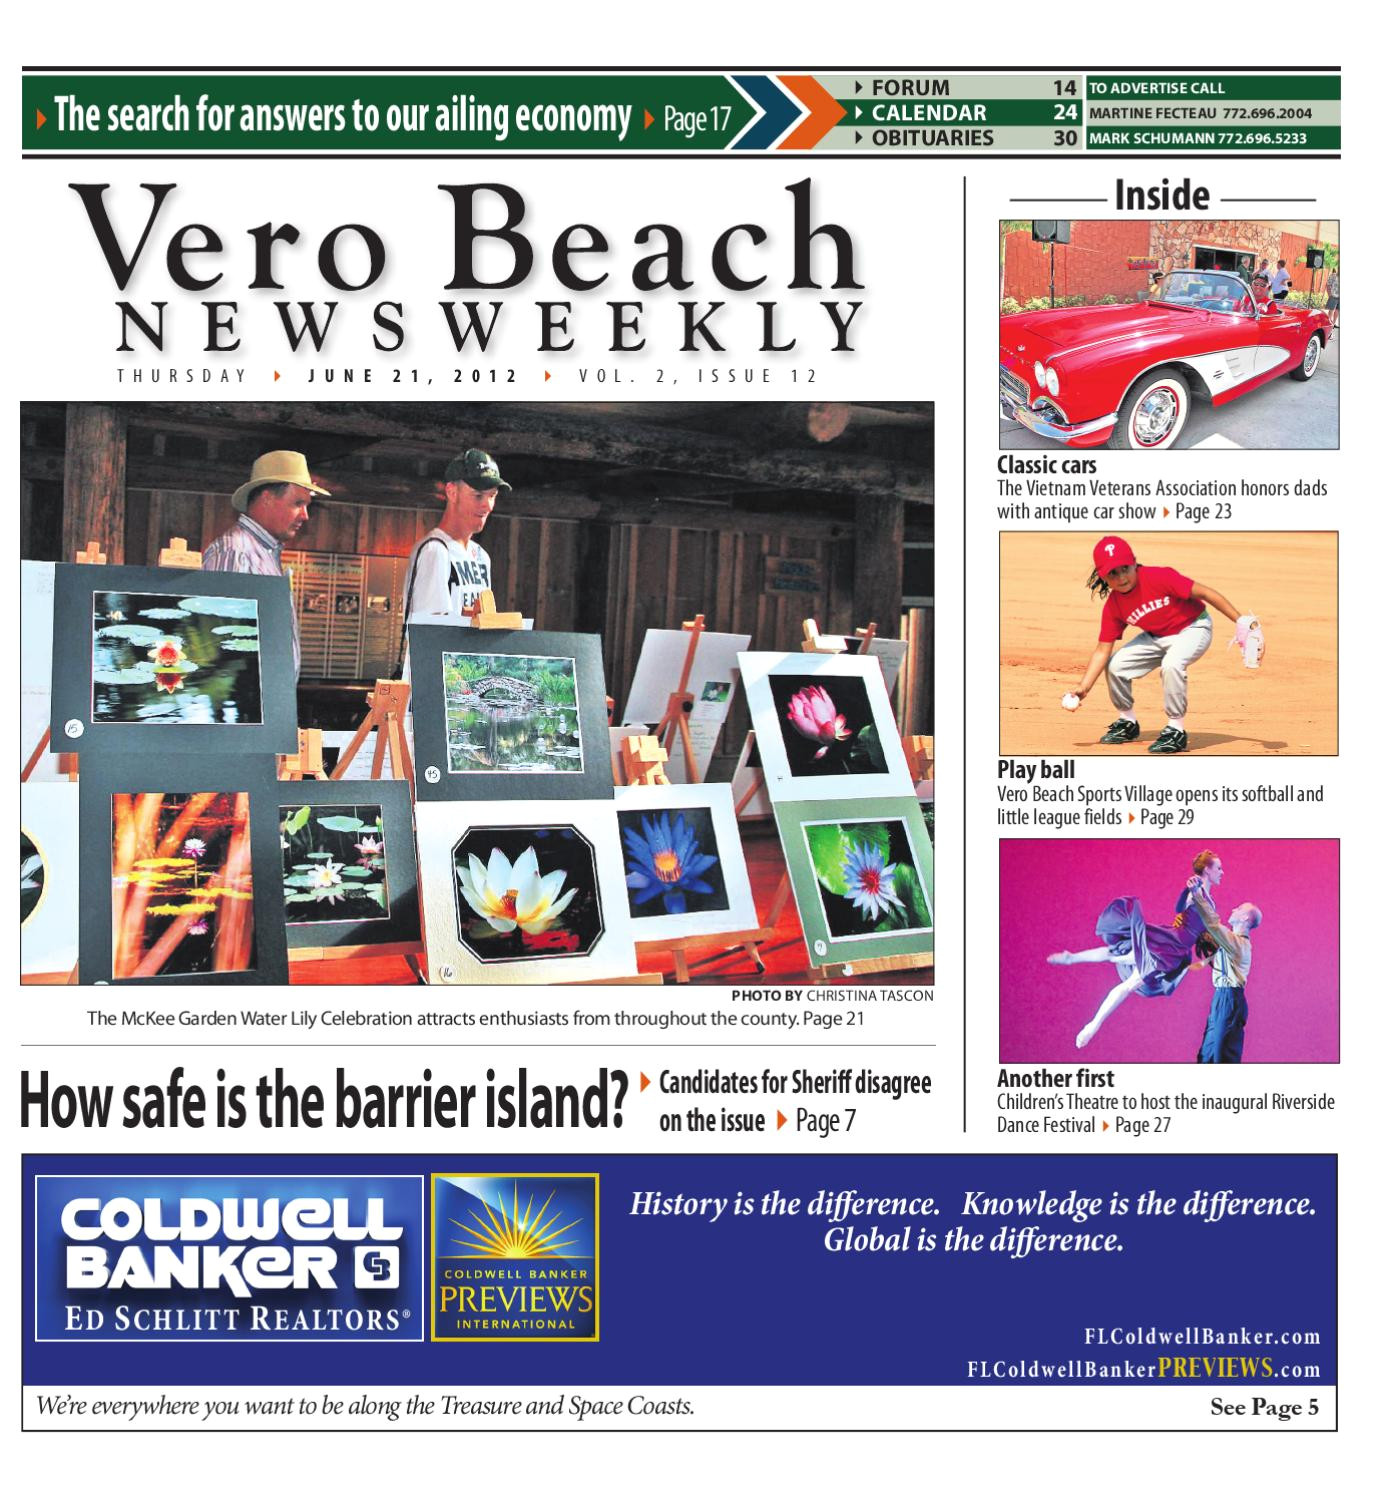 Jetson Appliance Repair Vero Beach Vero Beach News Weekly by Tcpalm Analytics issuu